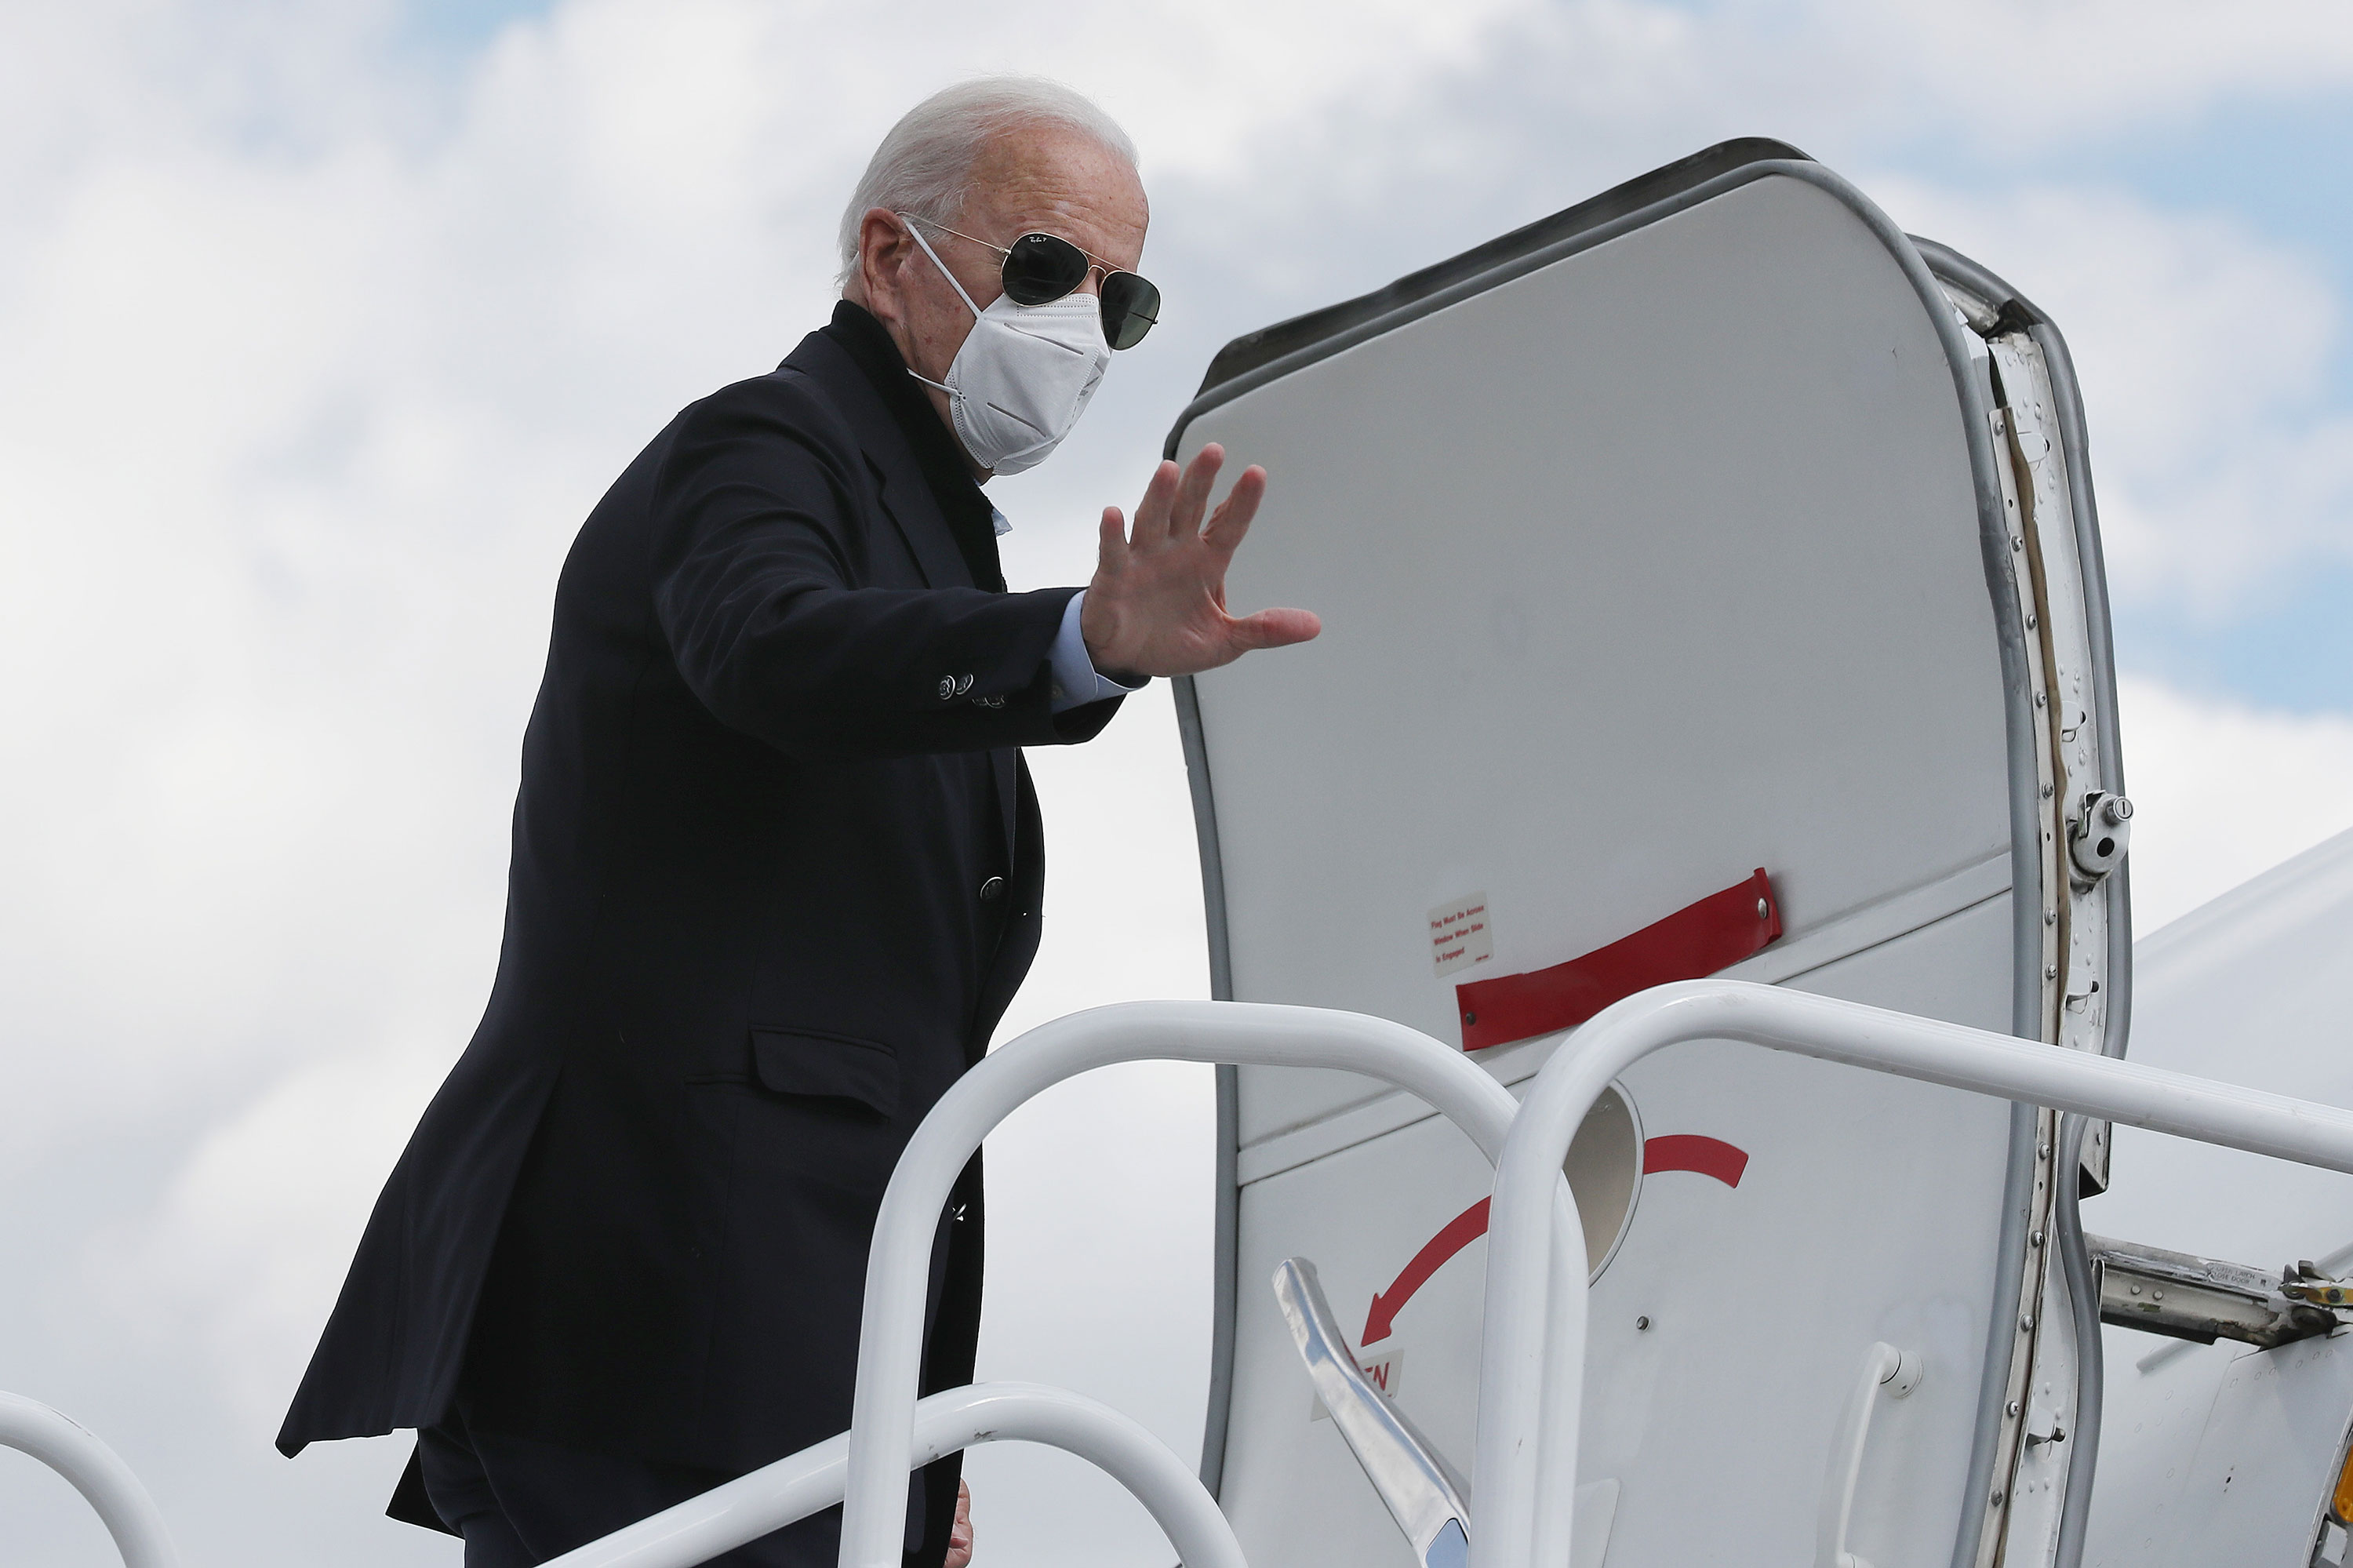 Former Vice President Joe Biden boards his campaign plane in New Castle, Delaware, before traveling to Grand Rapids, Michigan, on October 2.